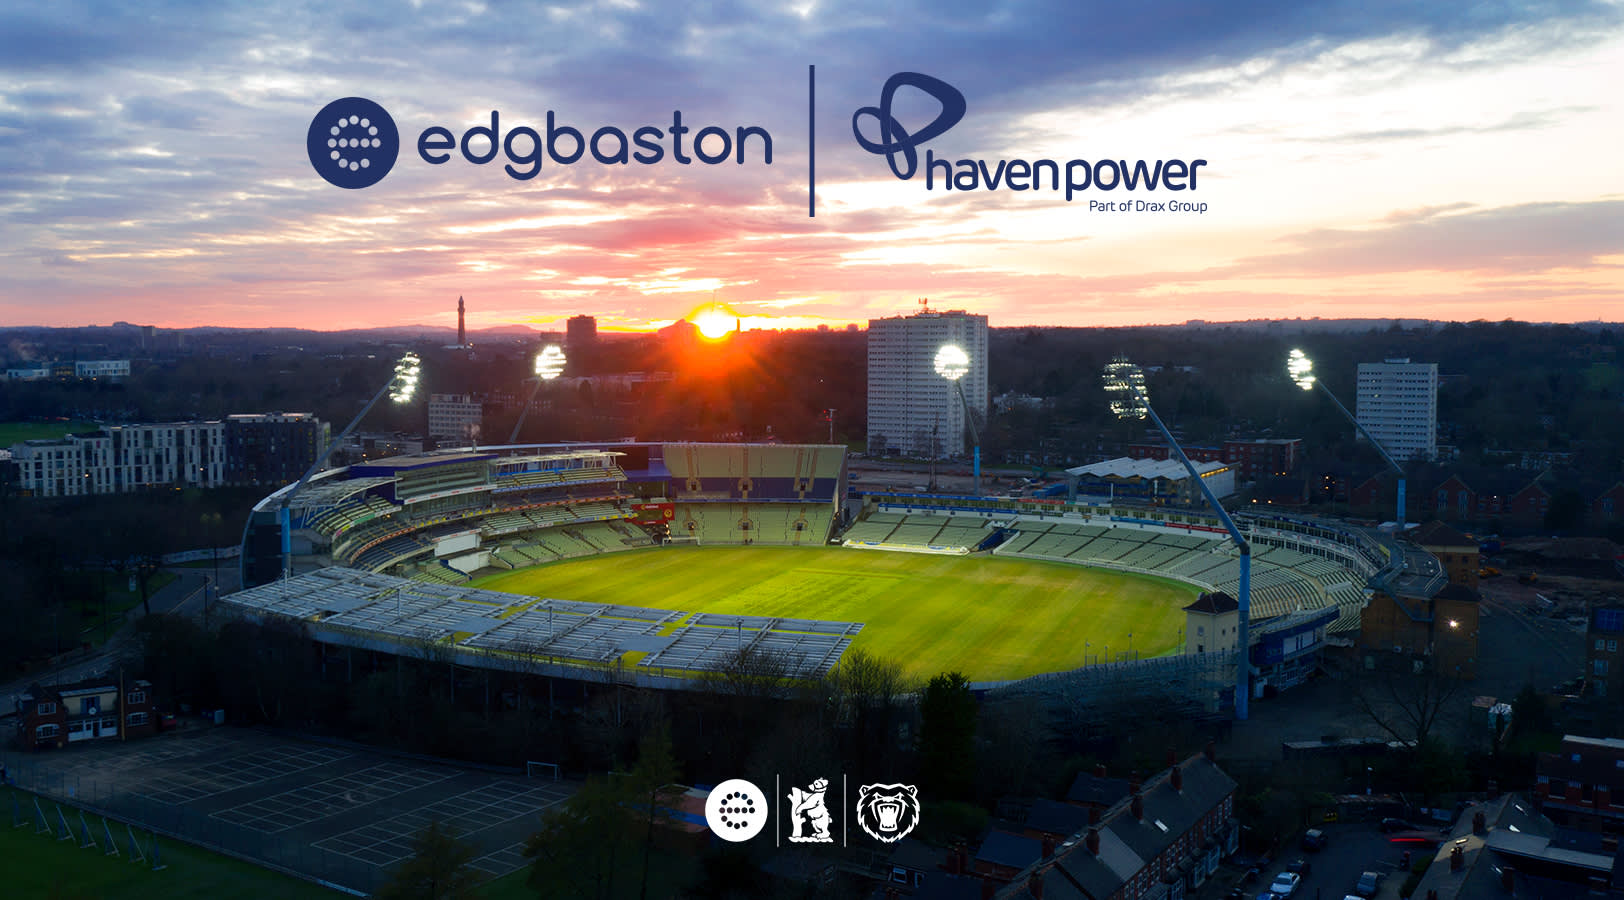 Edgbaston Stadium reinforces sustainability goals with Haven Power partnership